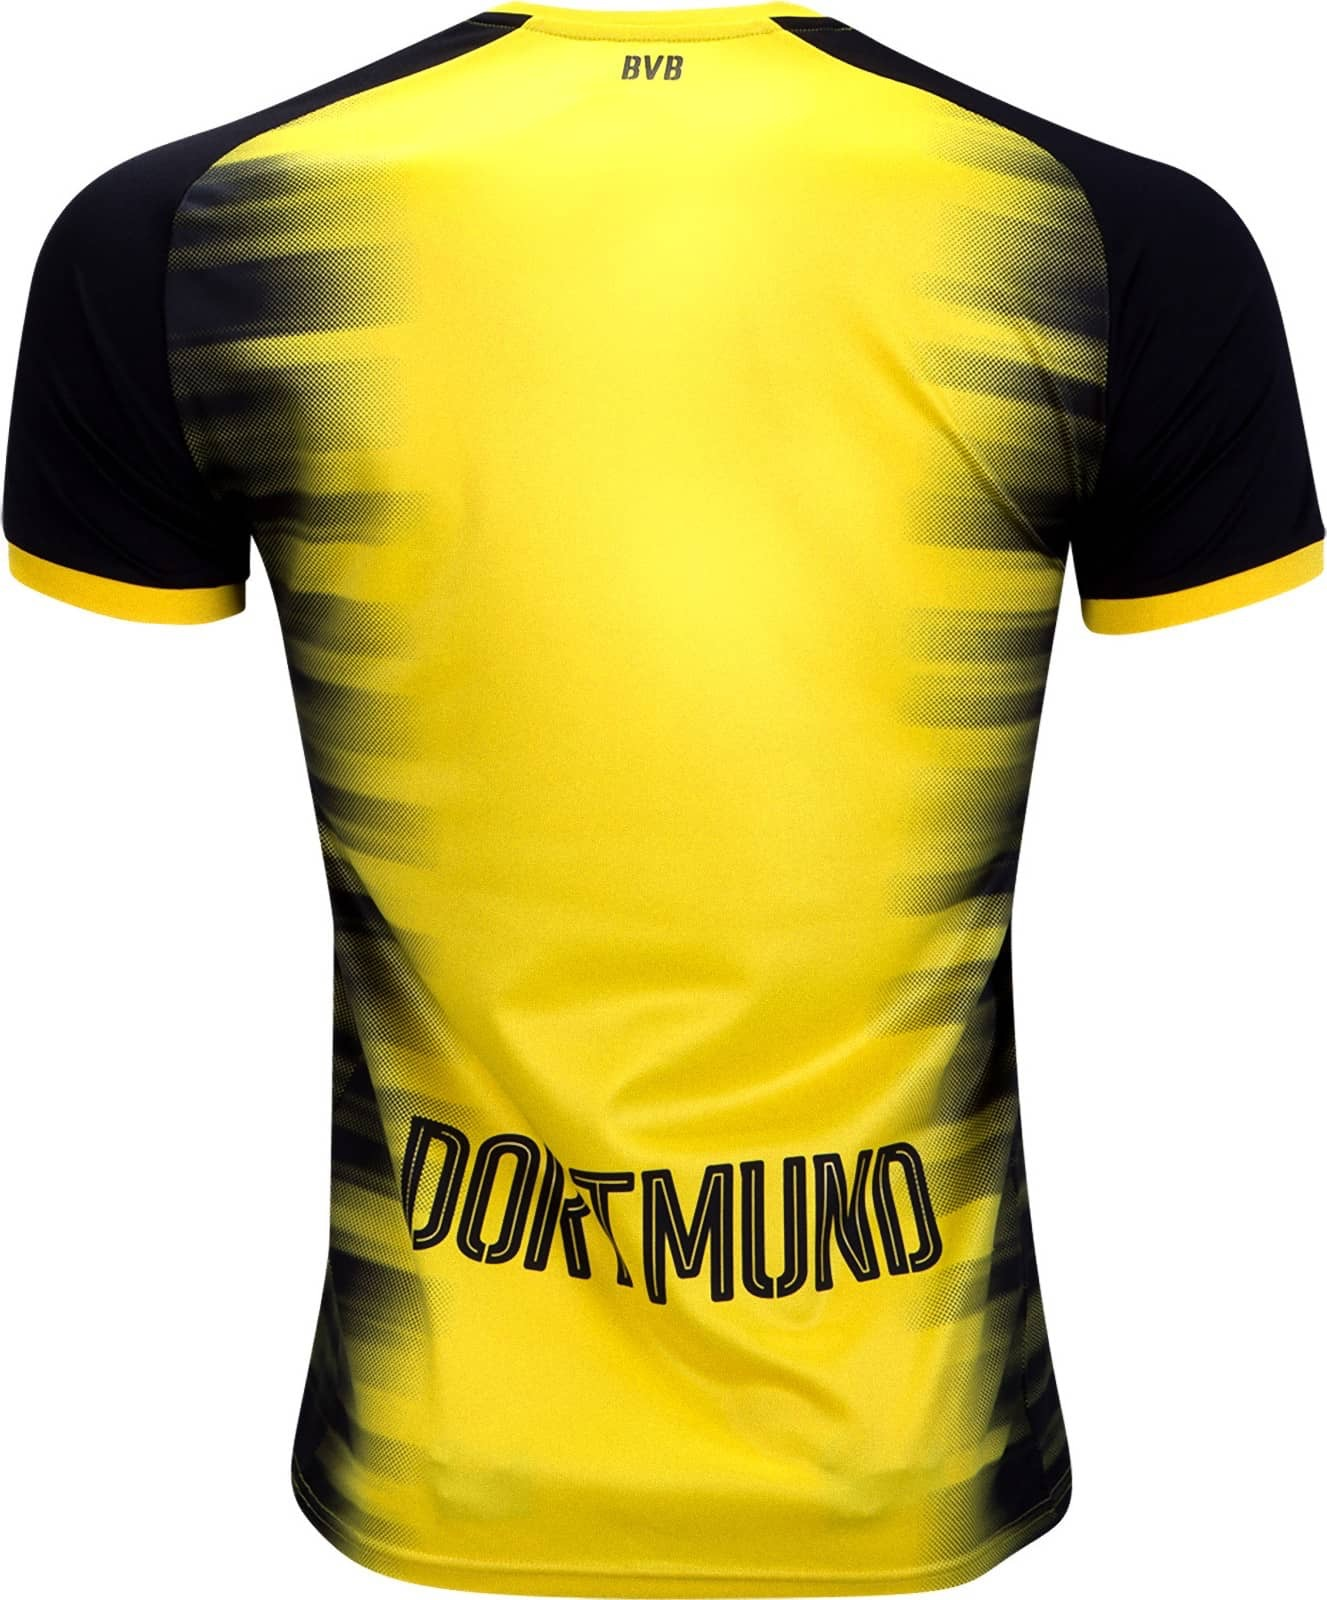 9fee6ef187c Borussia Dortmund 2017-18 Champions League Shirt Leaked